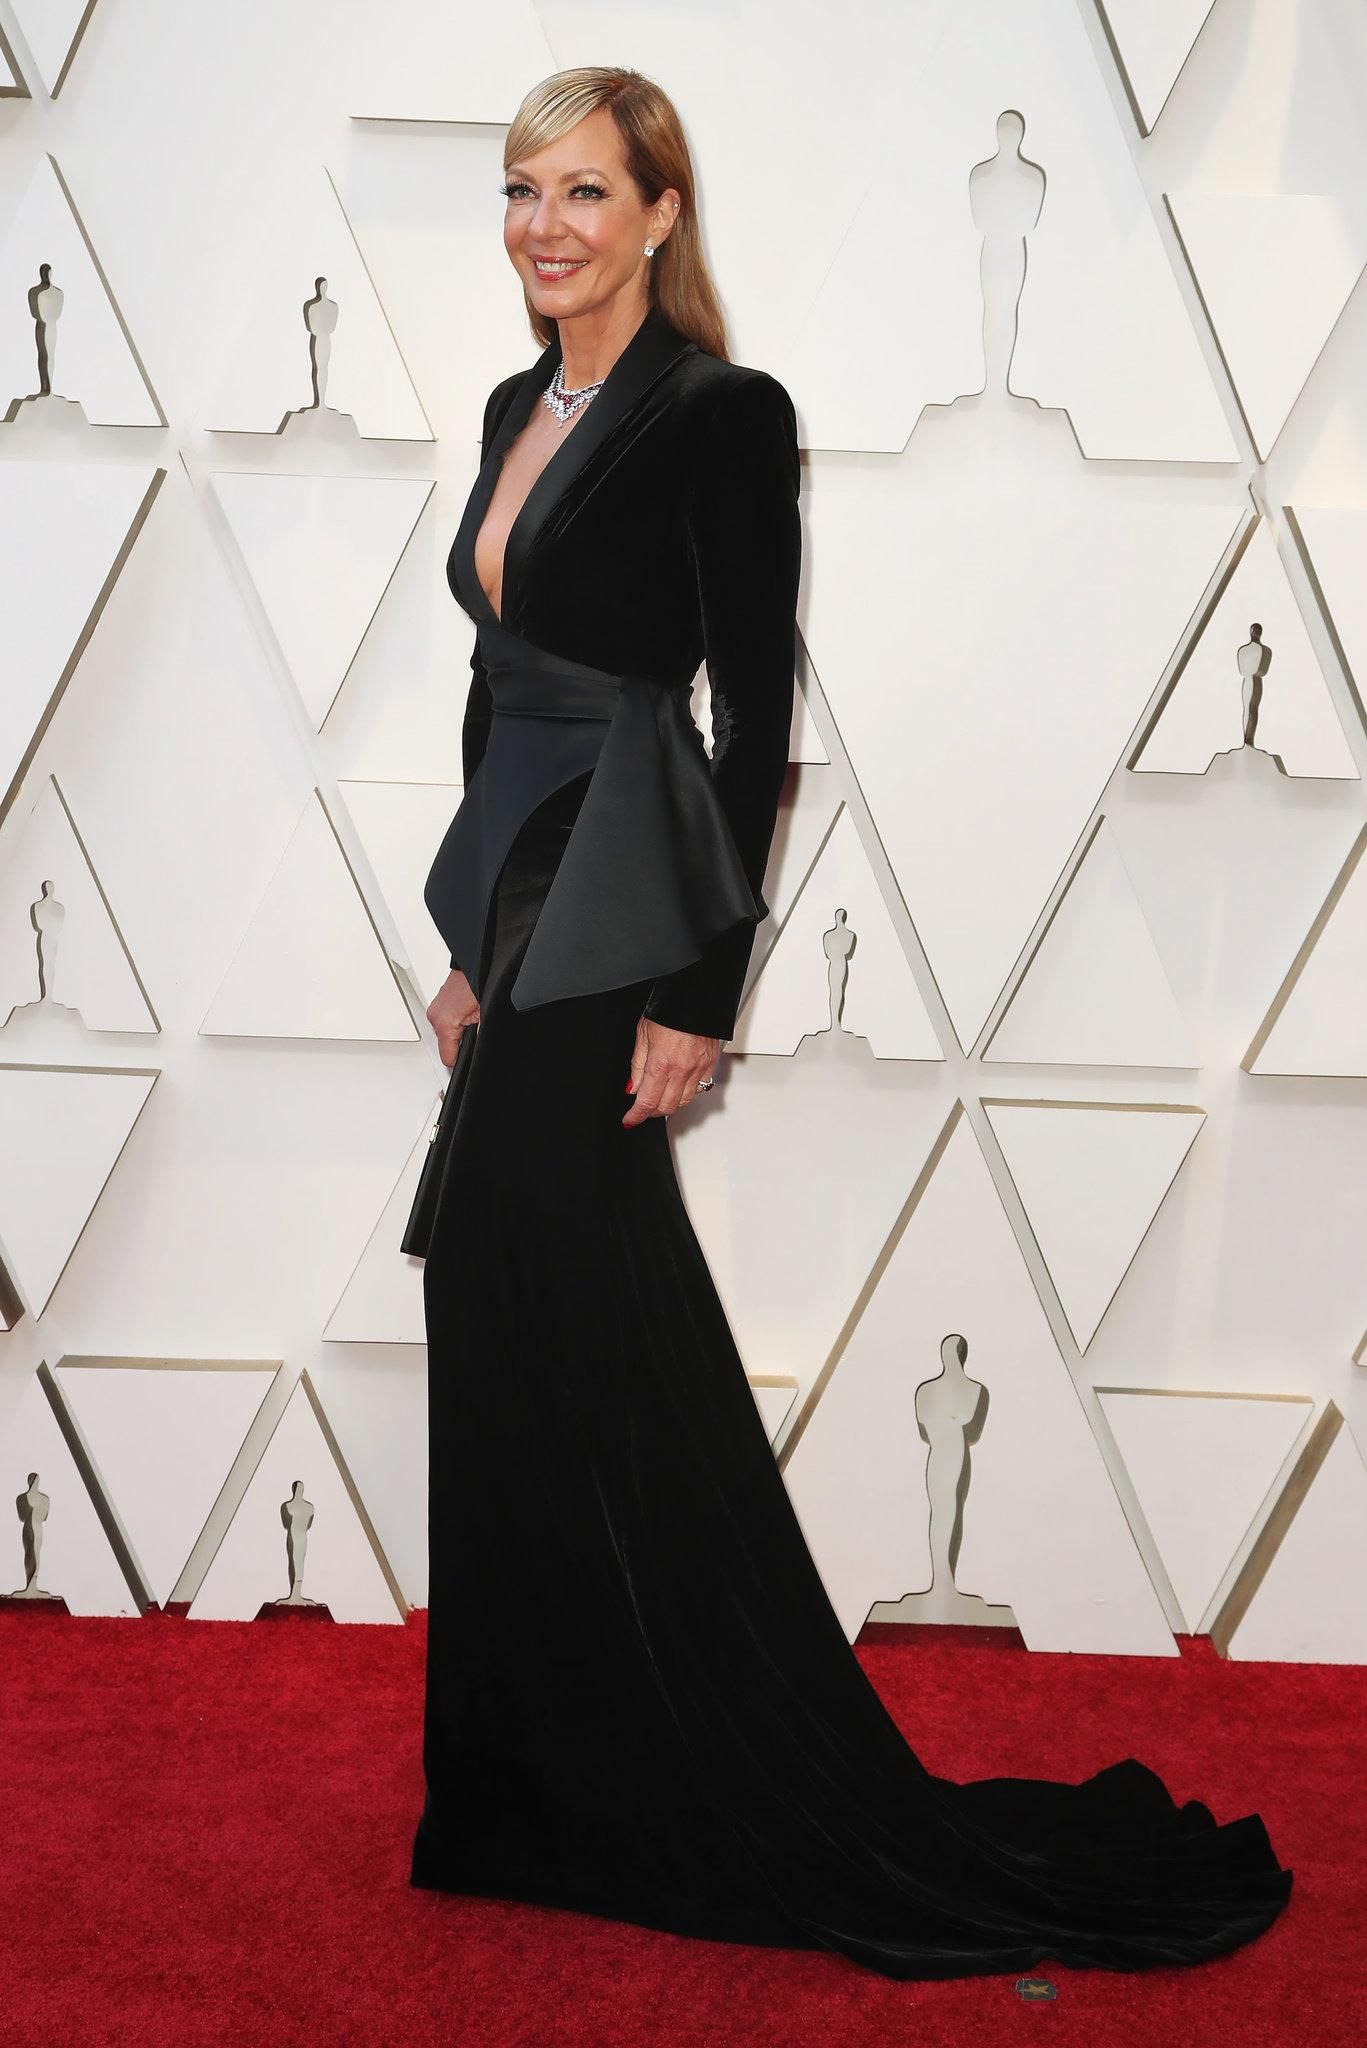 Oscars Red Carpet 2019: Stars Arriving at the 91st Academy